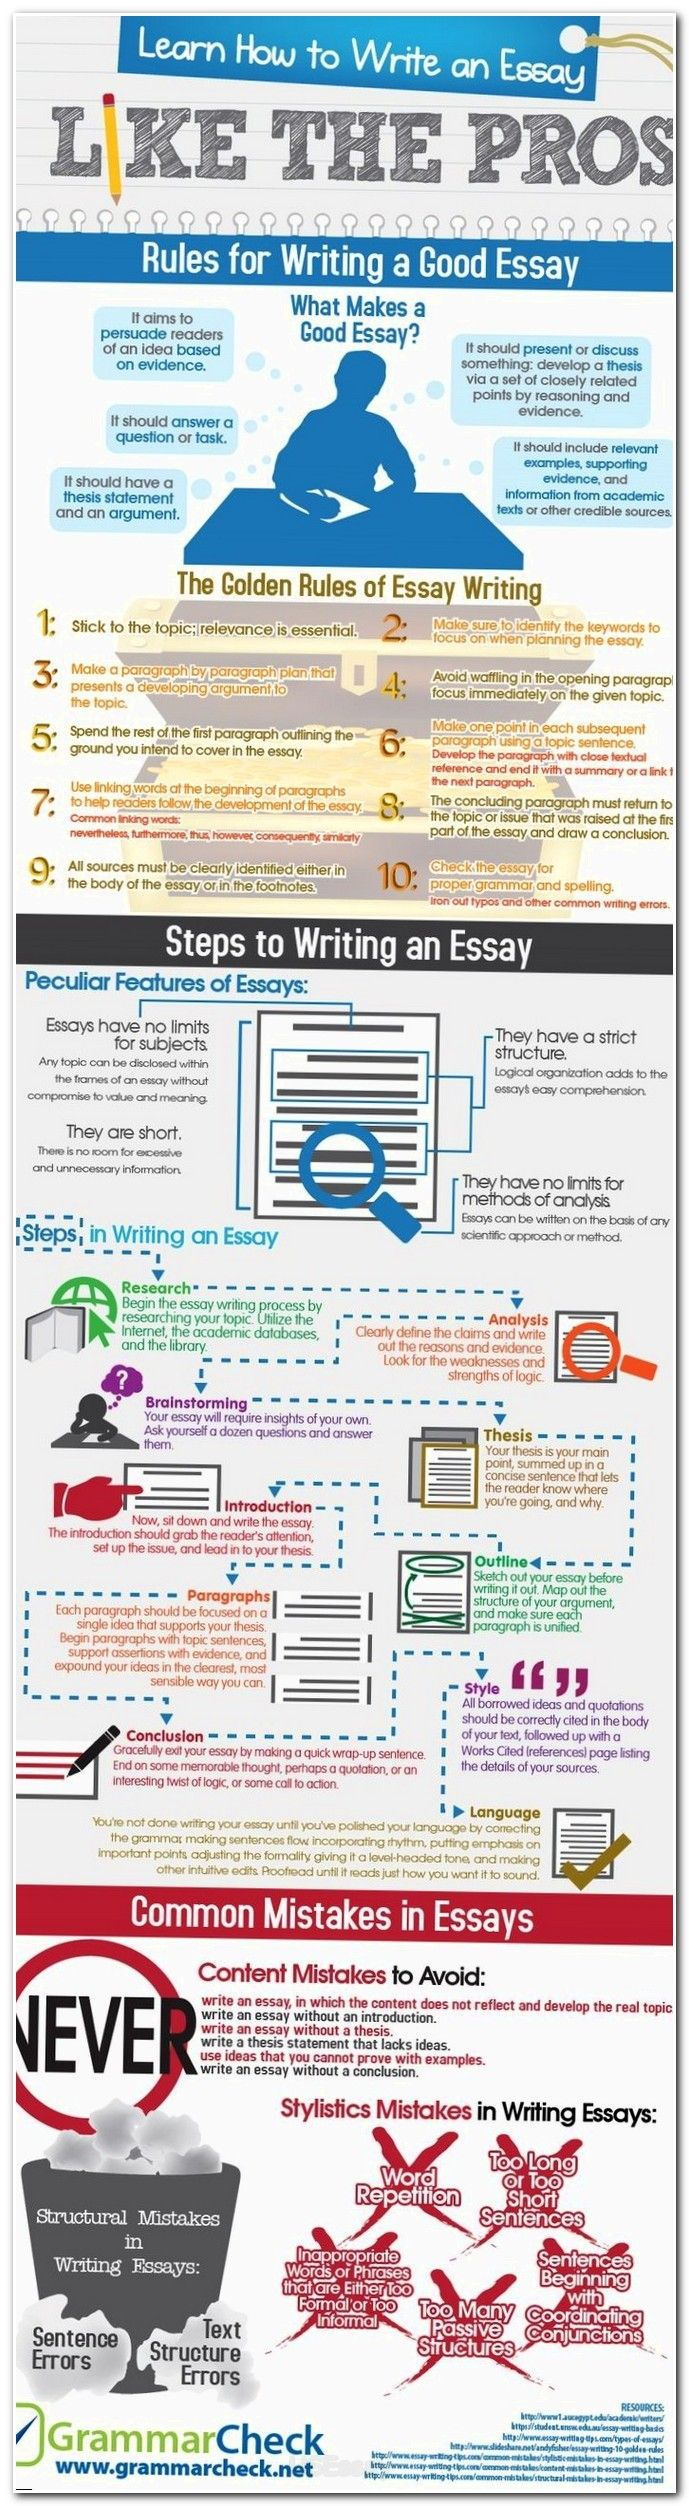 essay essaywriting songs to write essays about term paper topics essay essaywriting songs to write essays about term paper topics for english abortion should be illegal essay stanford mba sample scholarship essay